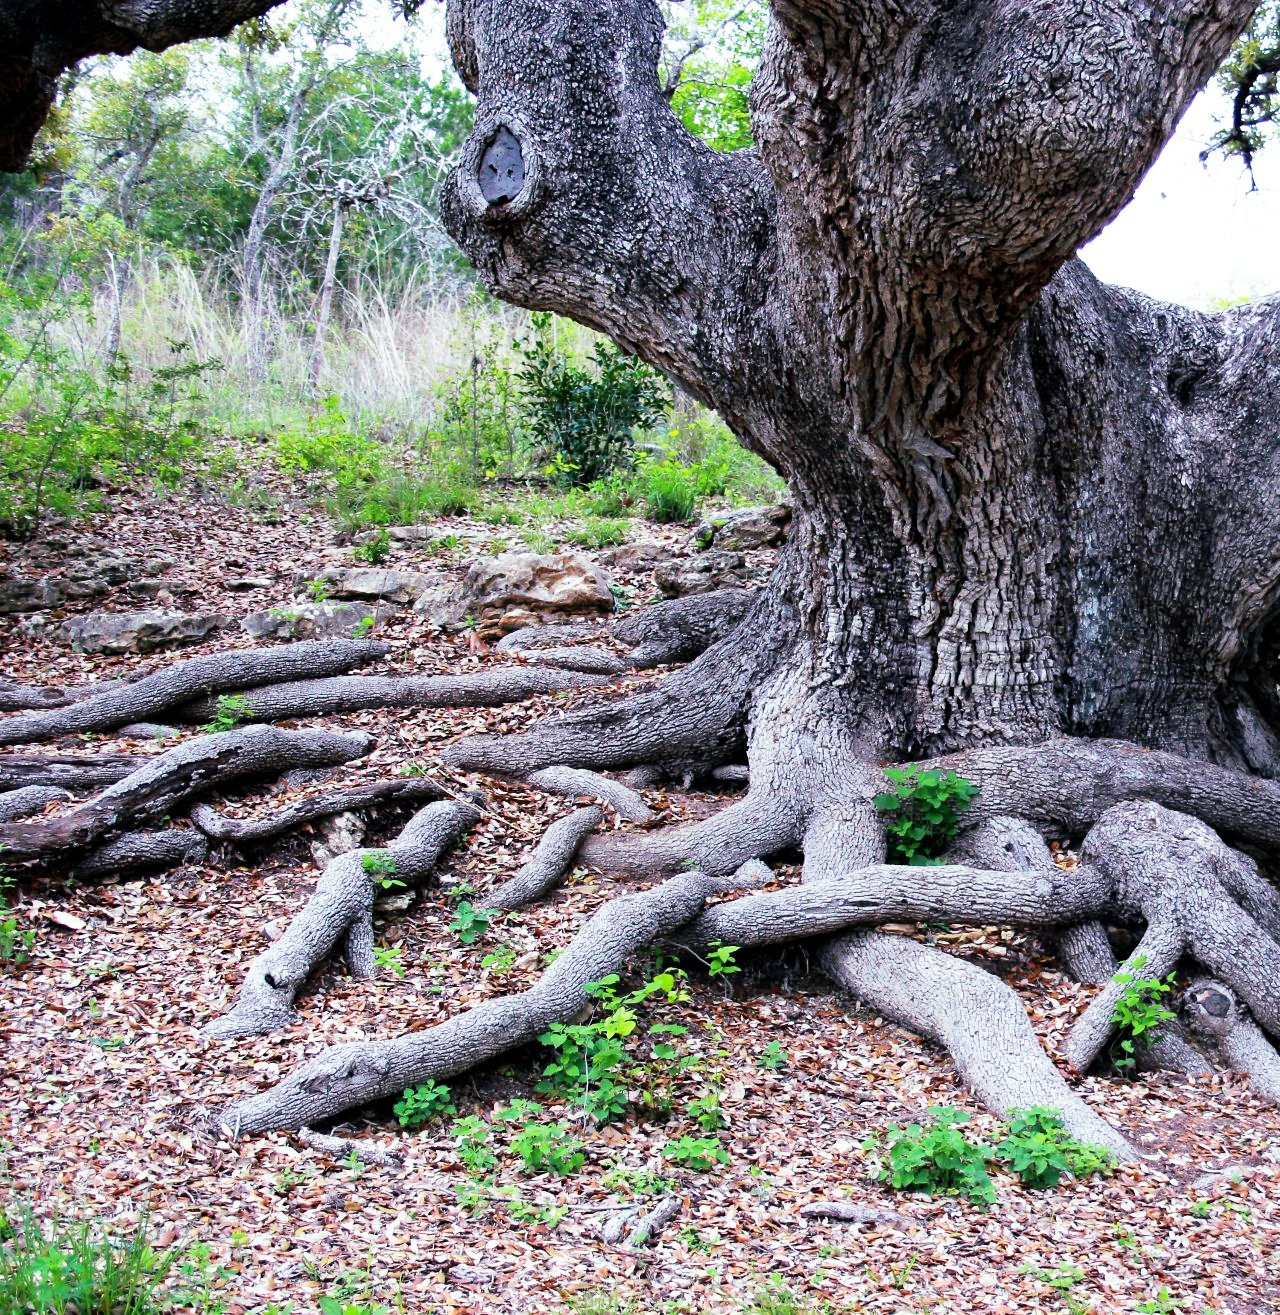 Oak Tree With Roots From the Canyon Edge: ...